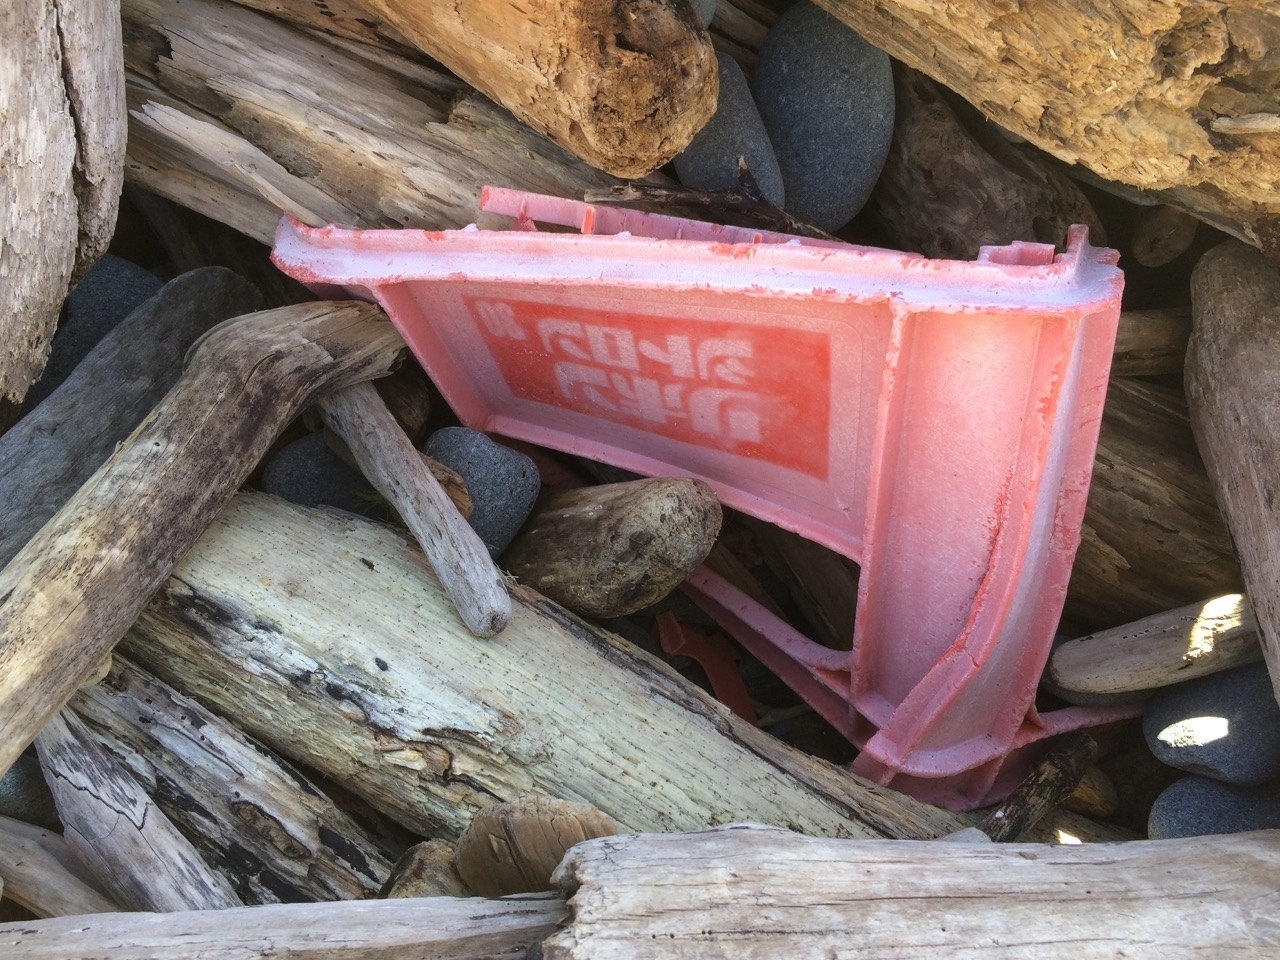 Image of a soda bottle crate